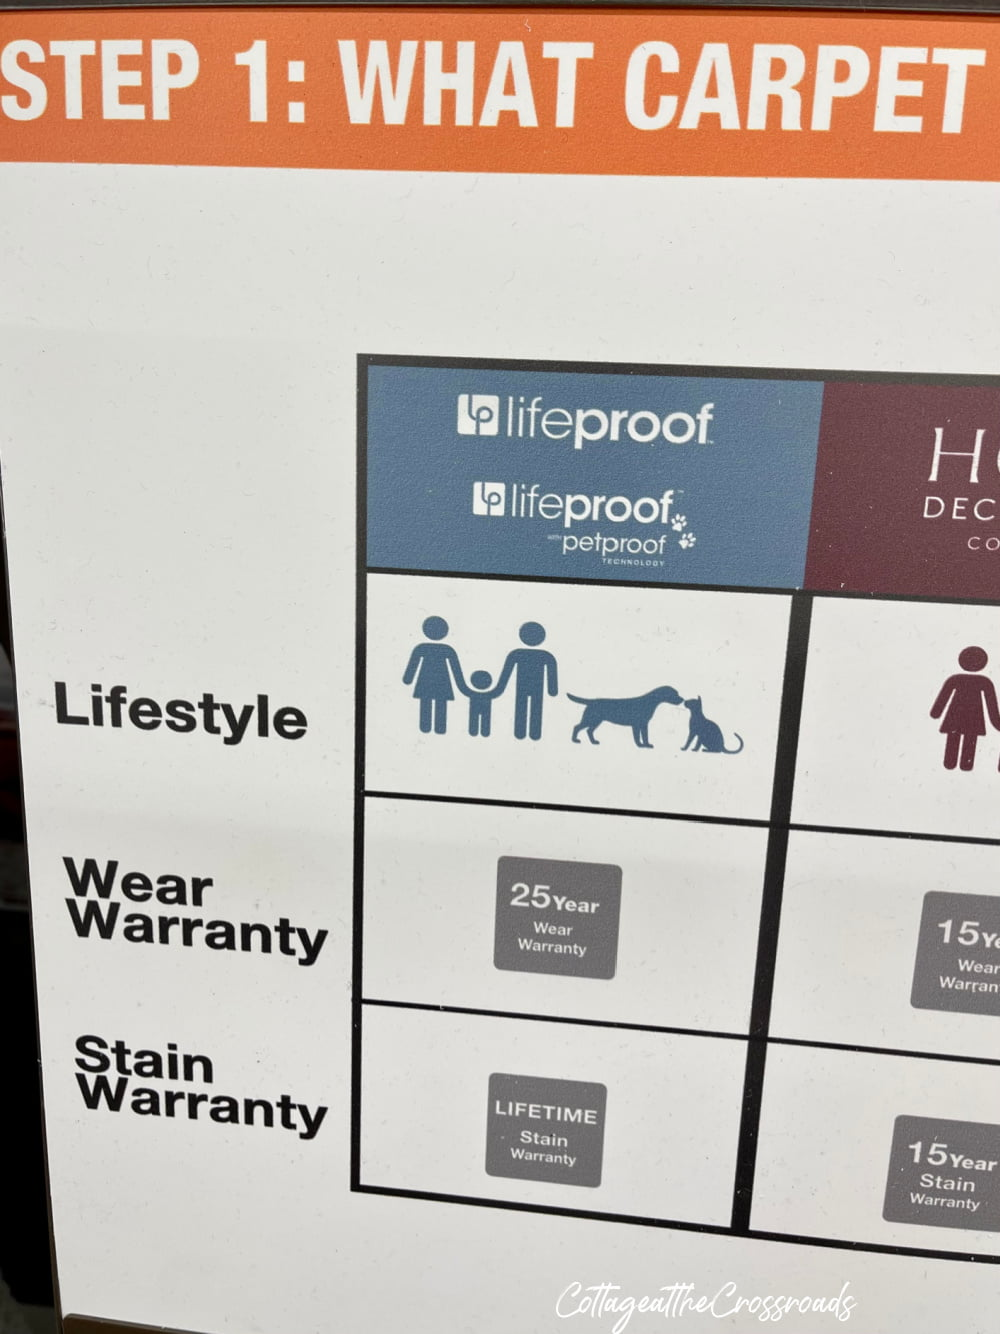 info on lifeproof petproof carpet from Home Depot